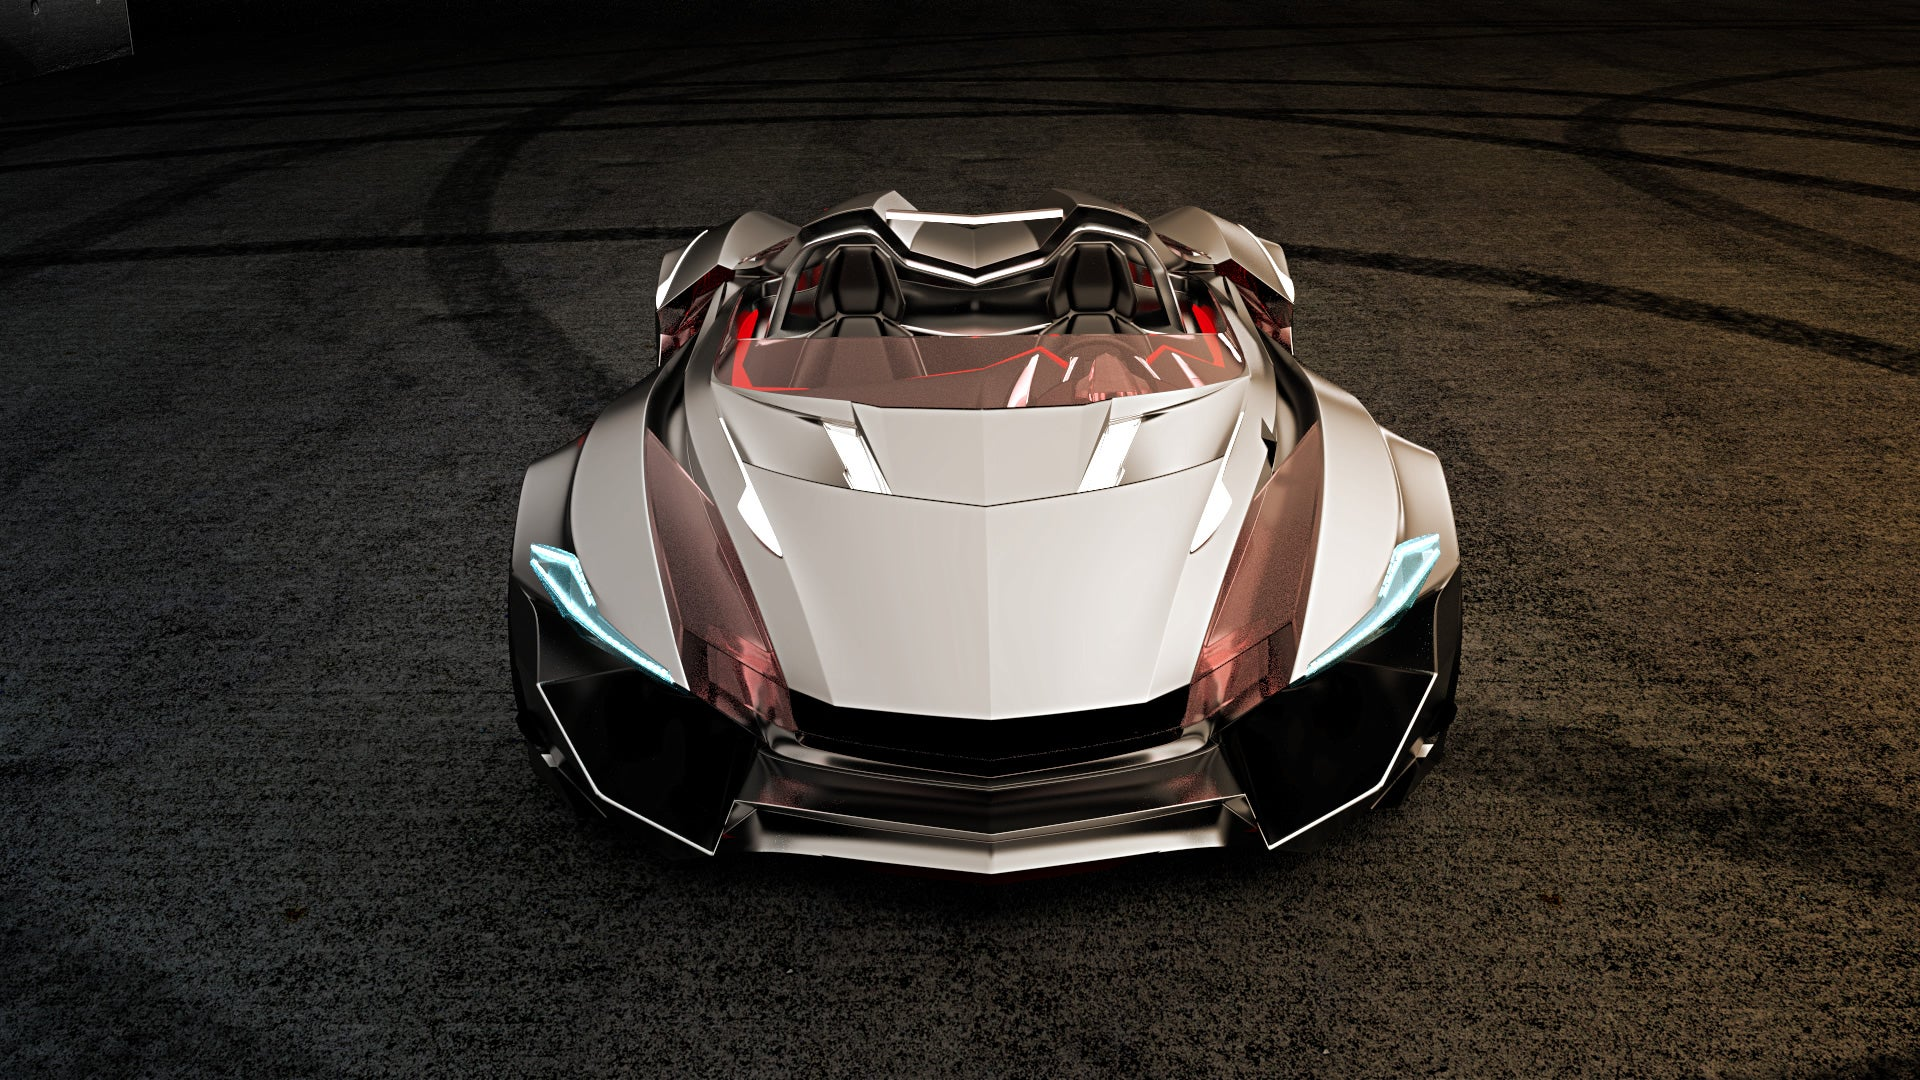 This awesome roadster should be the new Batmobile